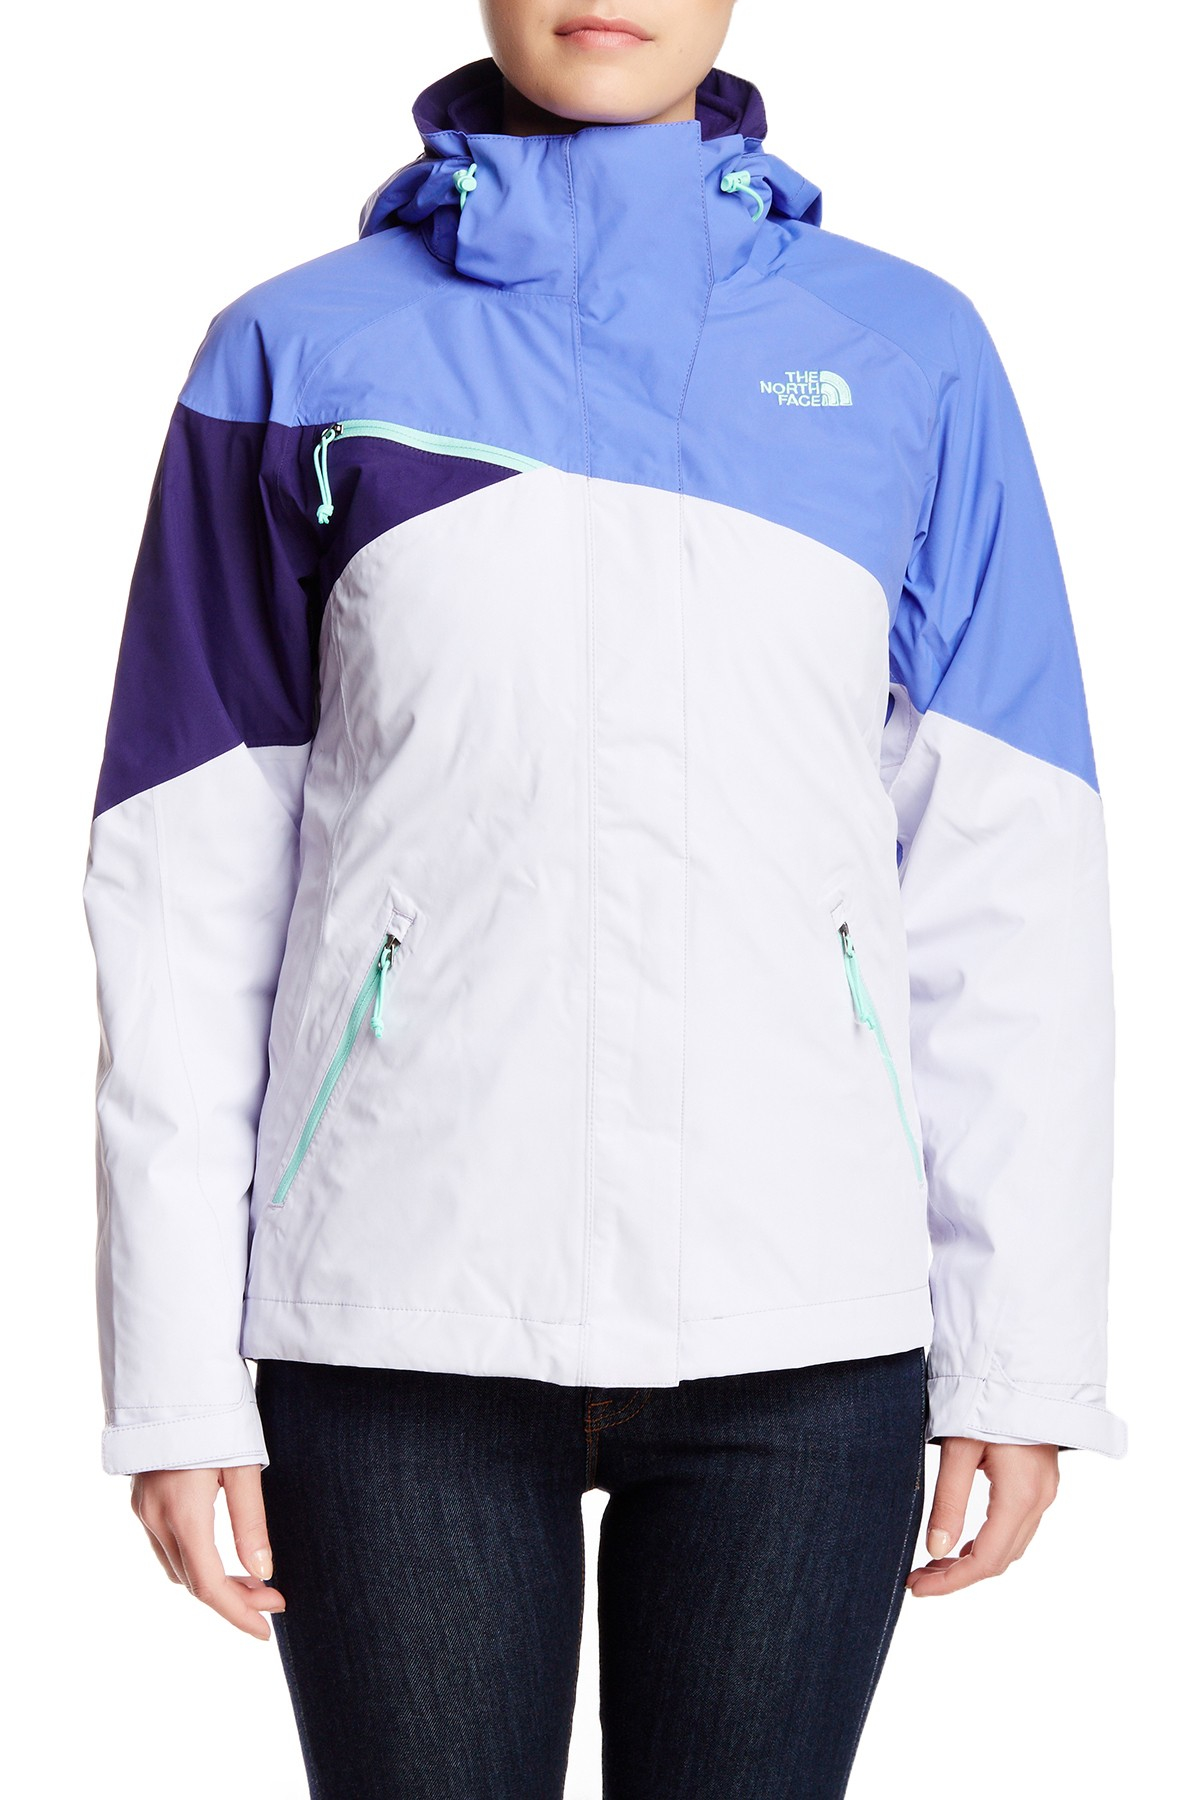 bc82b5d72 The North Face Blue Cinnabar Triclimate Jacket